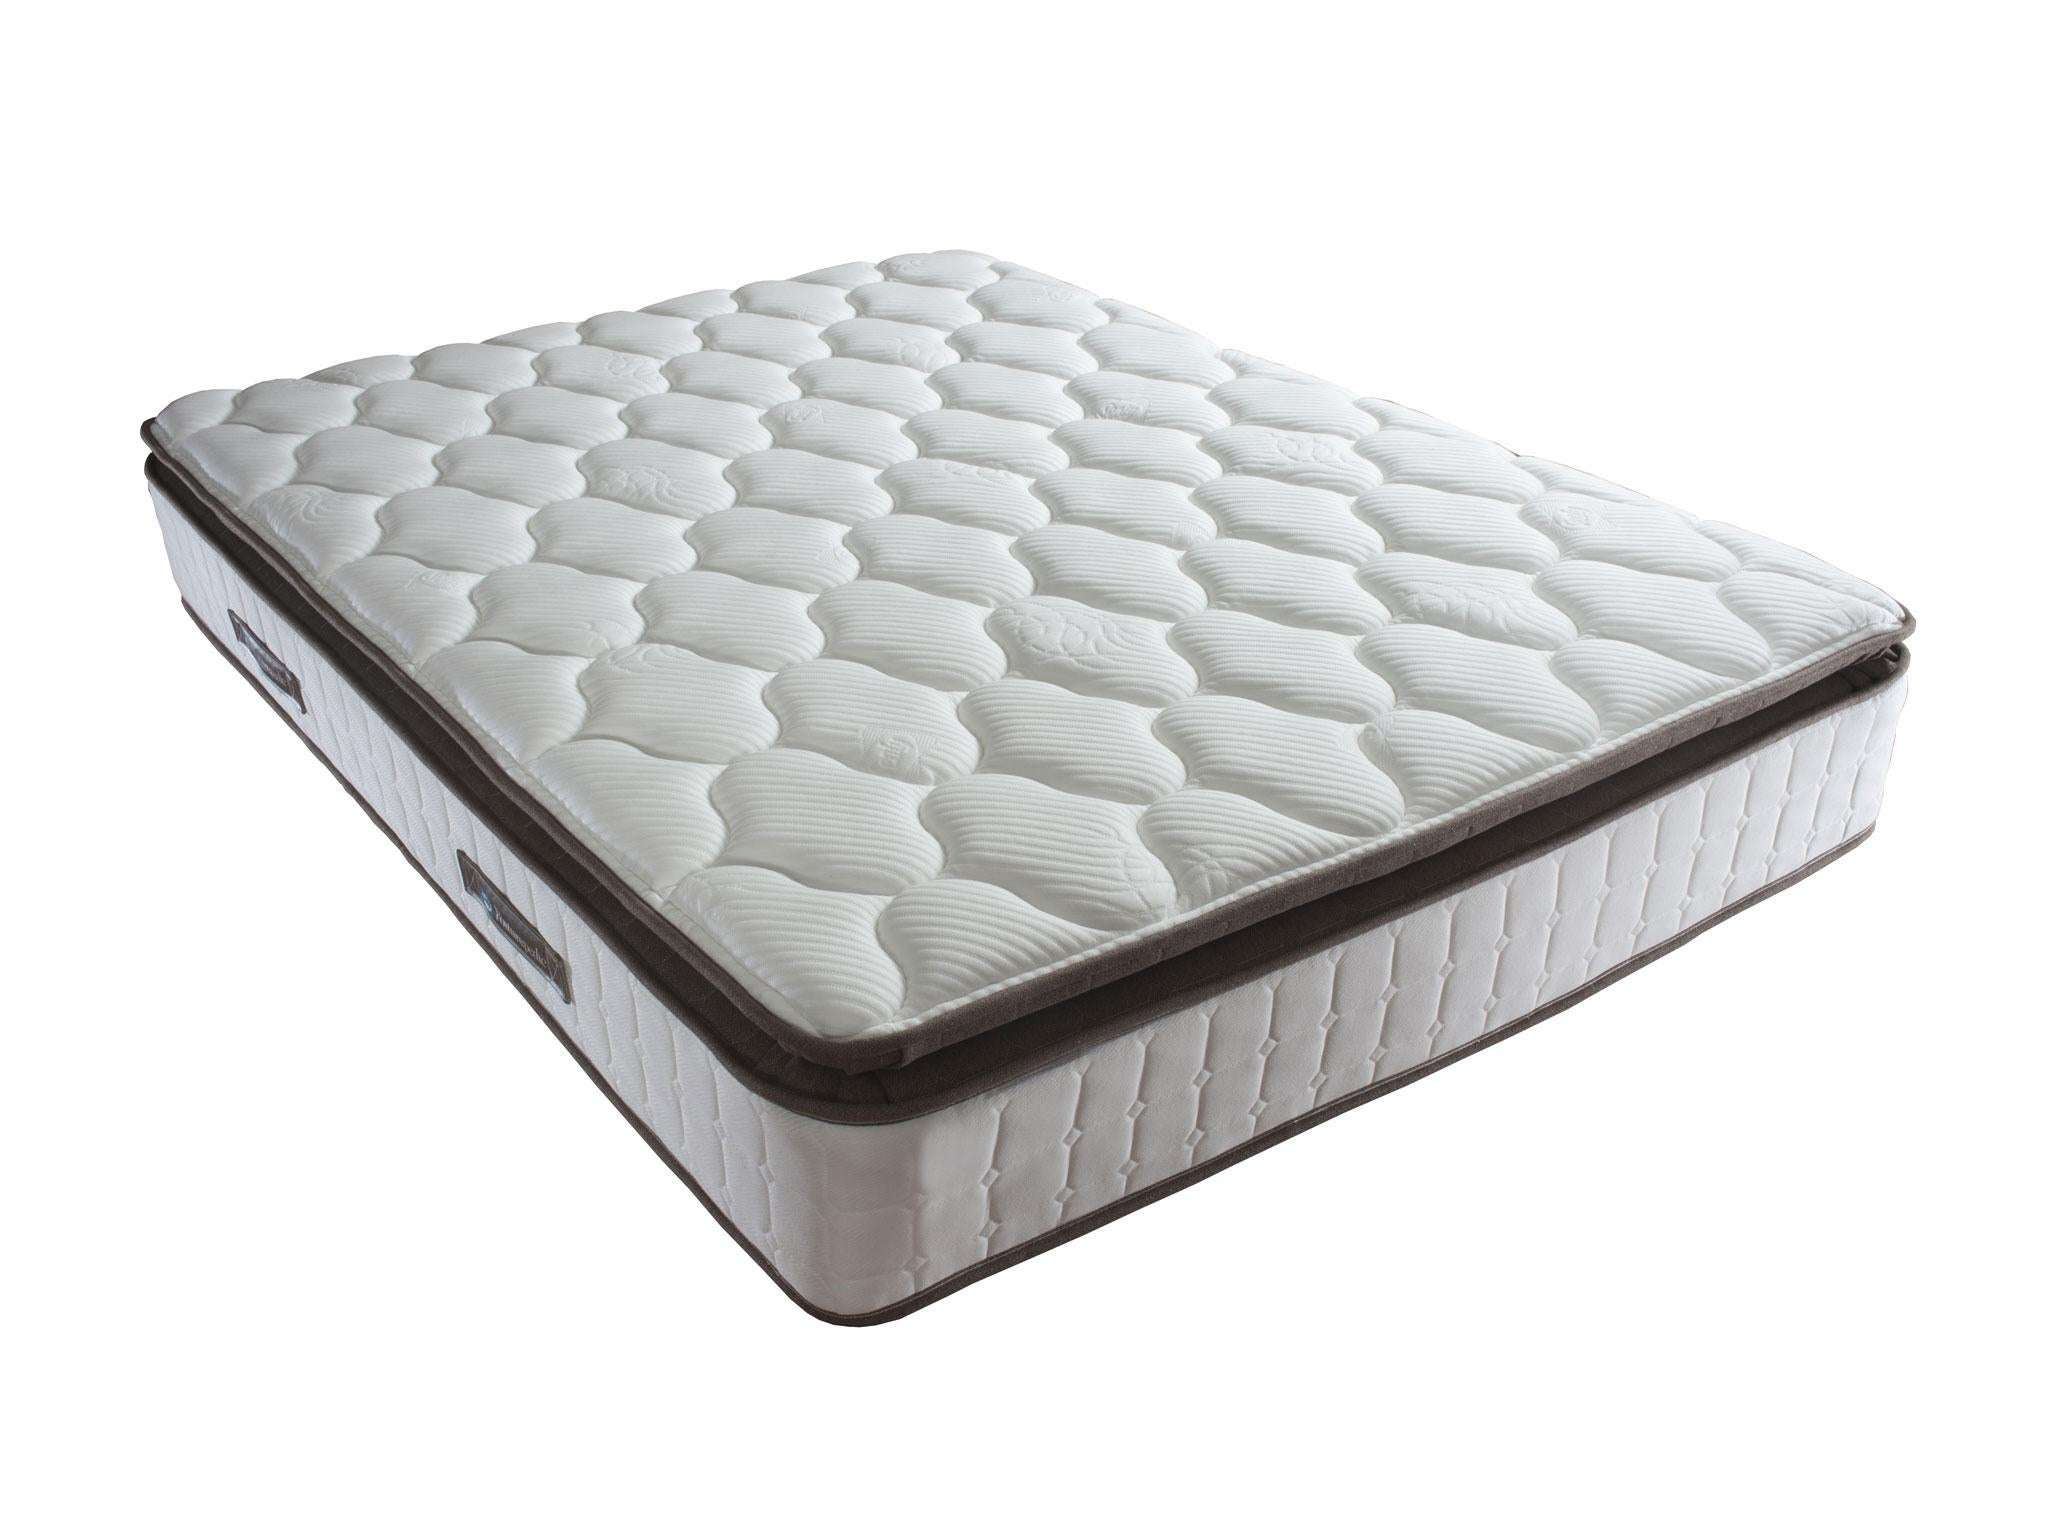 for mattresses nights sleep of mattress htm good the s pain type sleeper deep side a choose best top back types sleepers interior night